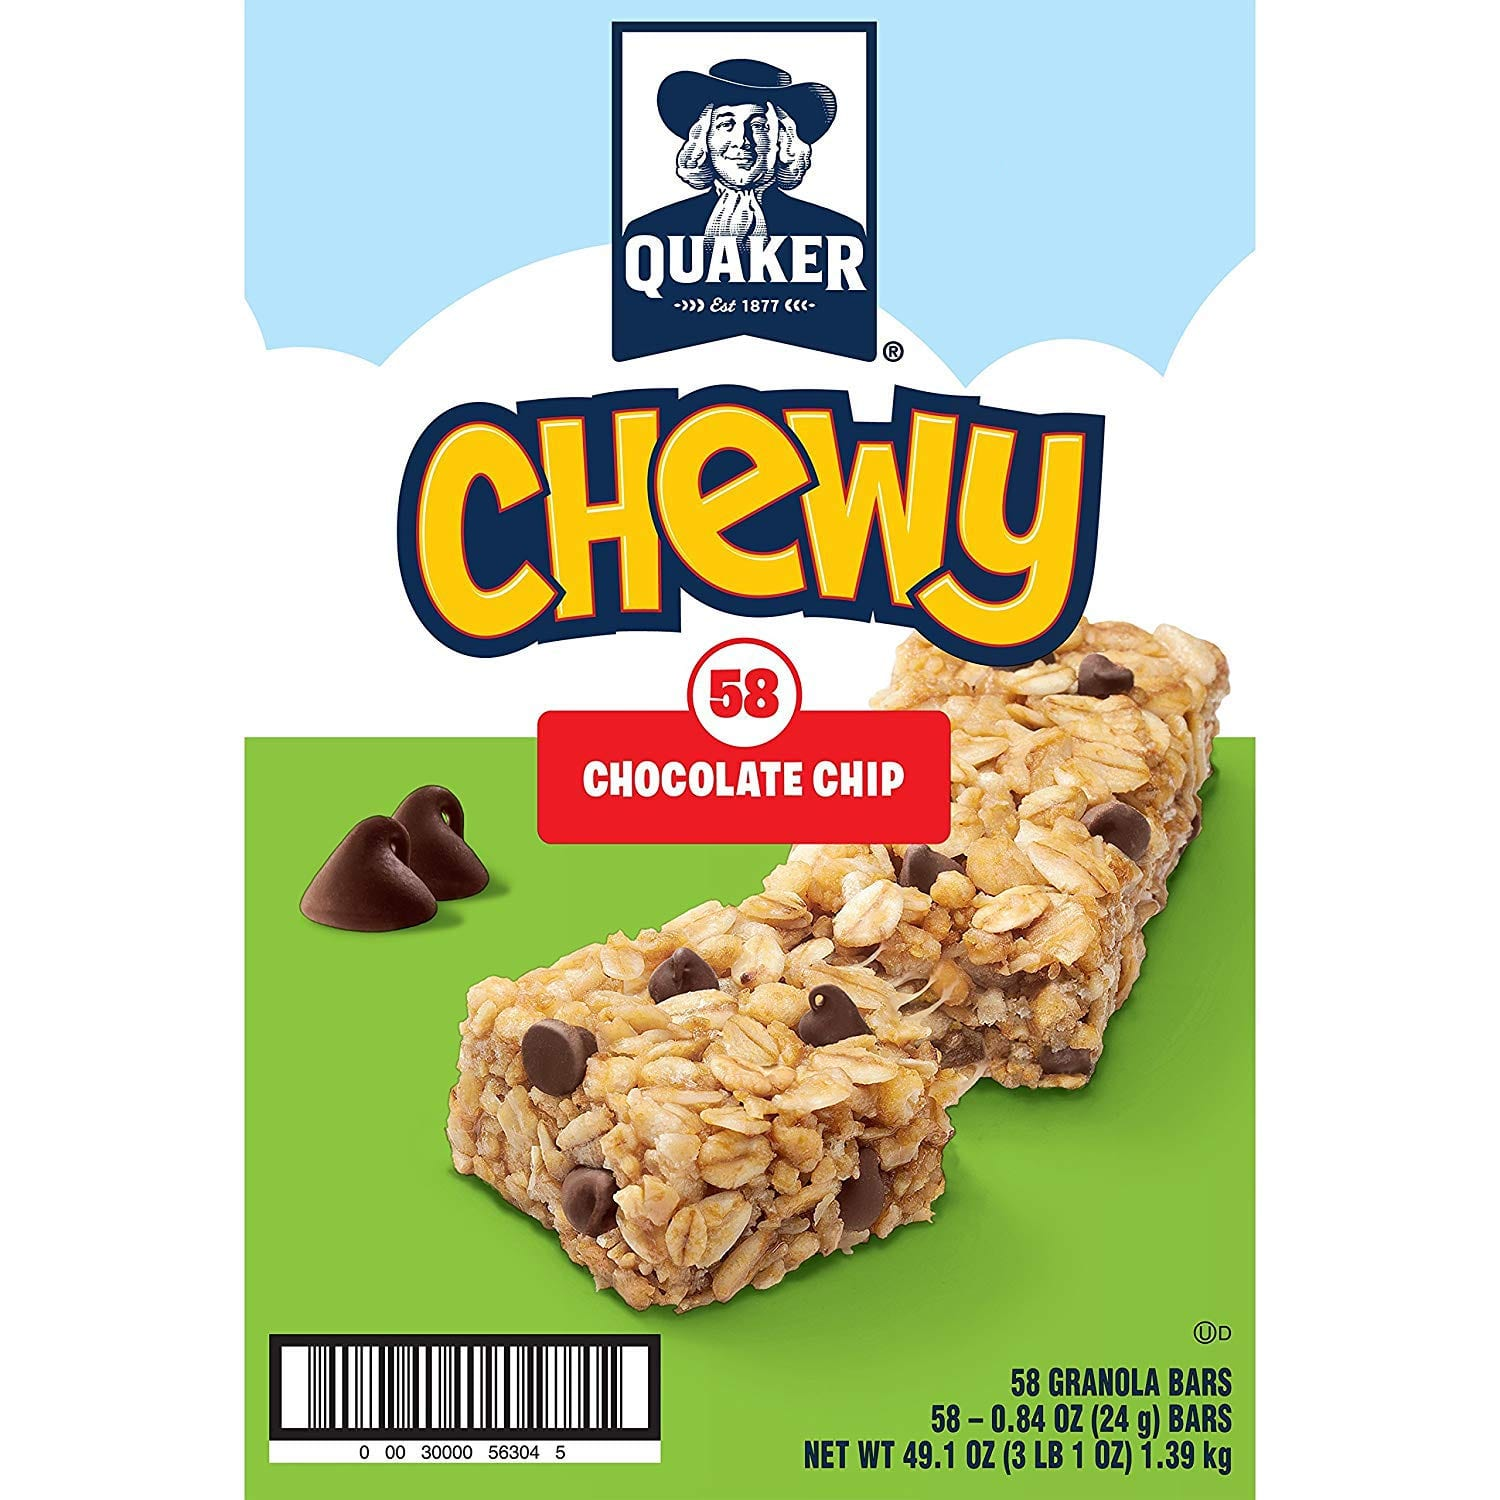 Quaker Chewy Granola Bars, Chocolate Chip, 58 Bars Amazon Prime $7.47 or less with S&S  Lowest ever according to CCC